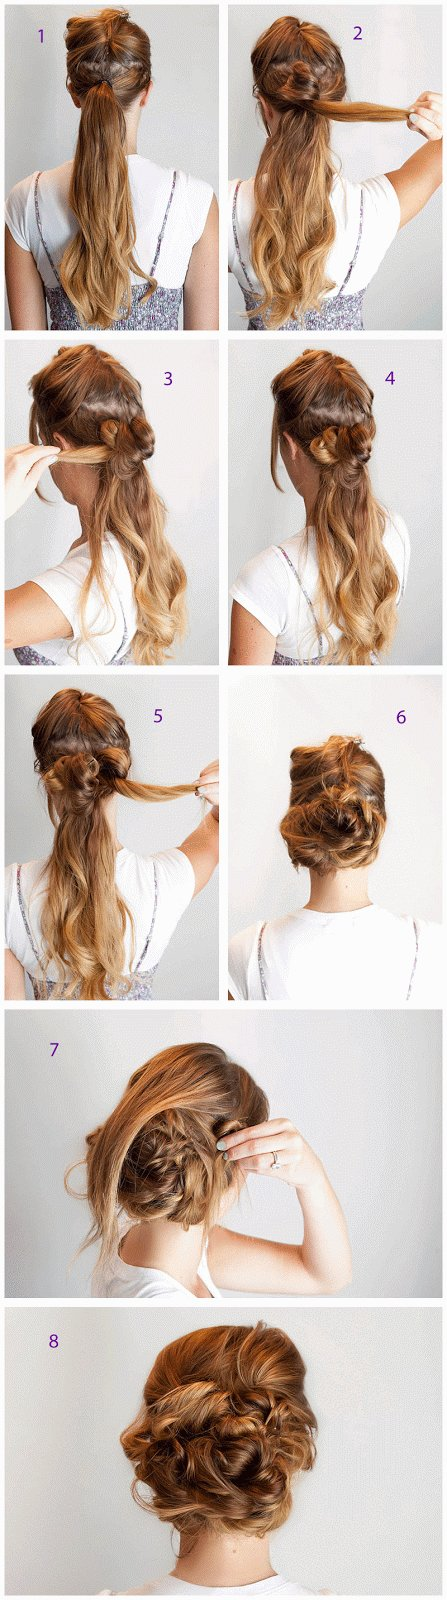 The Best Prom Hairstyle For Long Hair Step By Step Entertainment Pictures